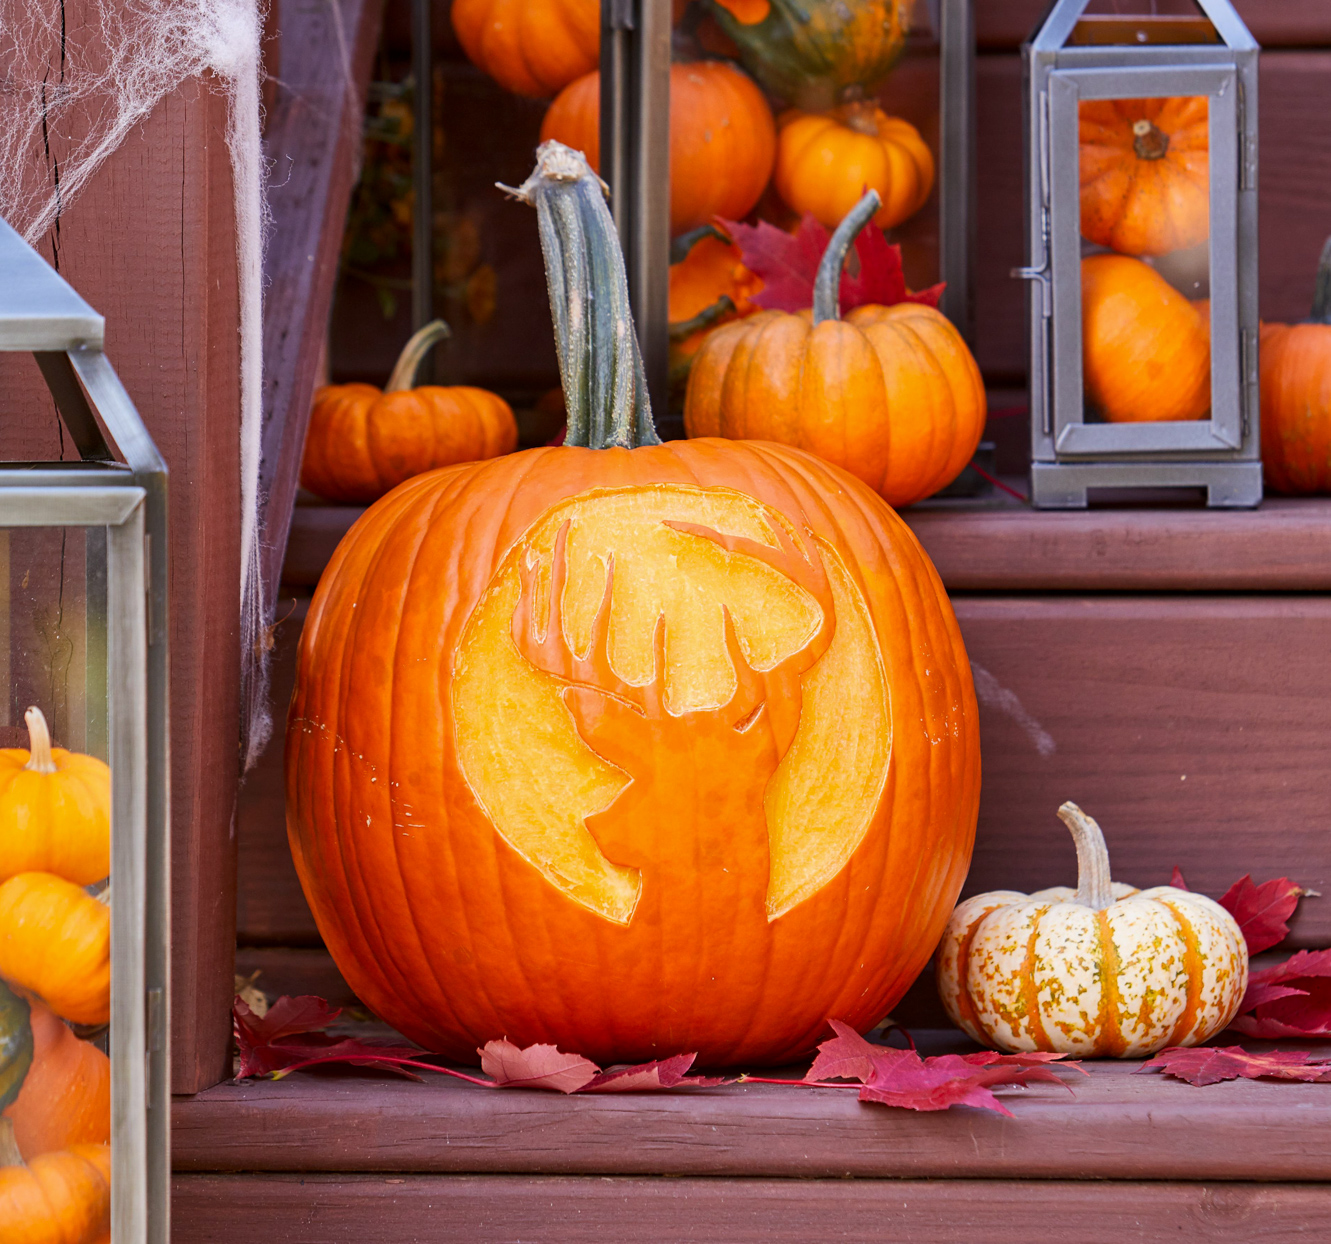 39 Free Pumpkin Stencils For Your Best Jack O Lanterns Yet Better Homes Gardens